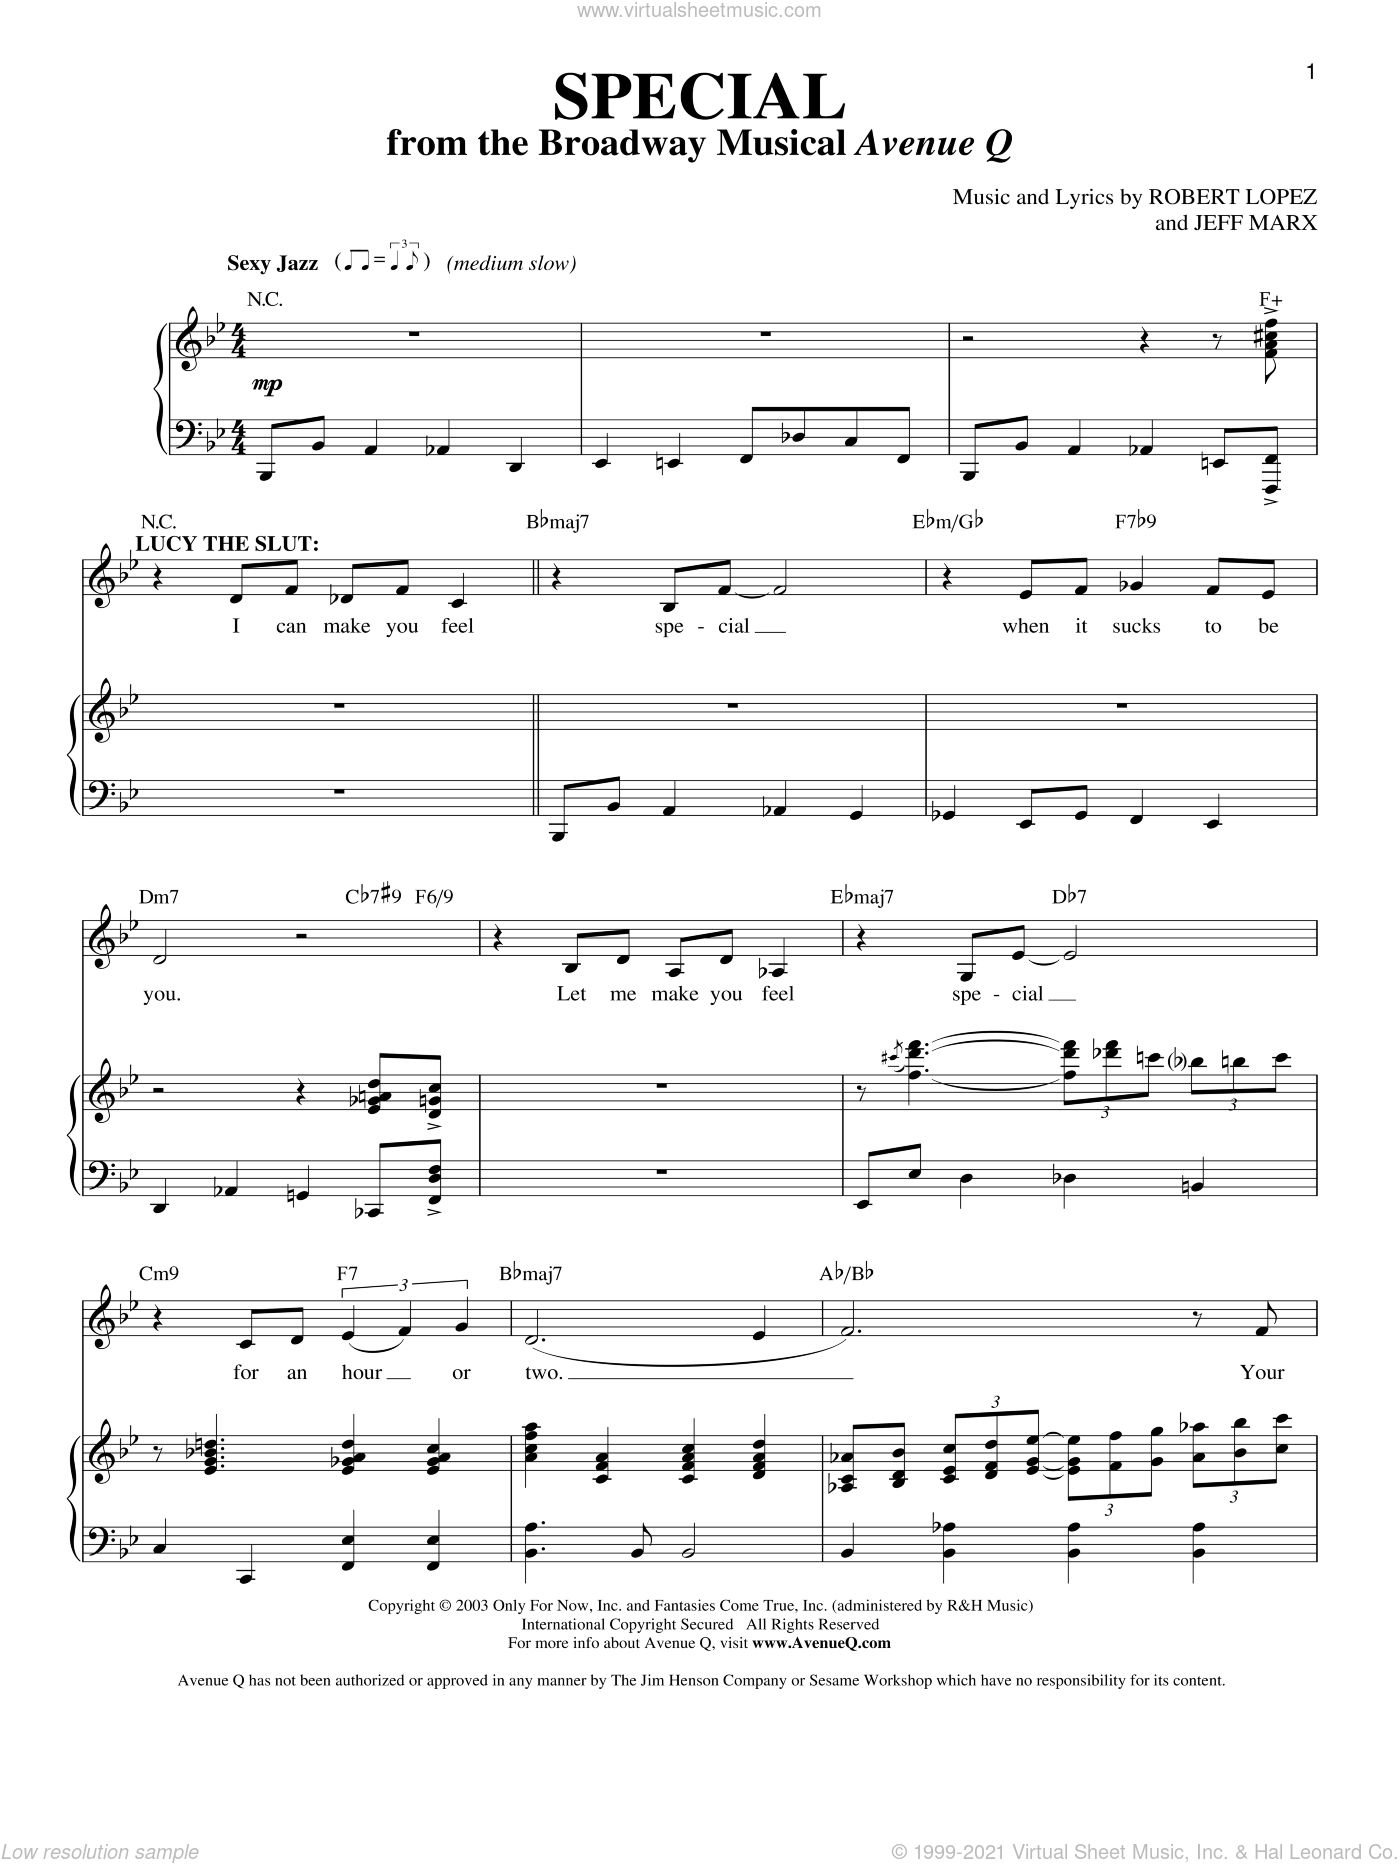 Special (from Avenue Q) sheet music for voice and piano by Avenue Q, Jeff Marx, Robert Lopez and Robert Lopez & Jeff Marx, intermediate skill level